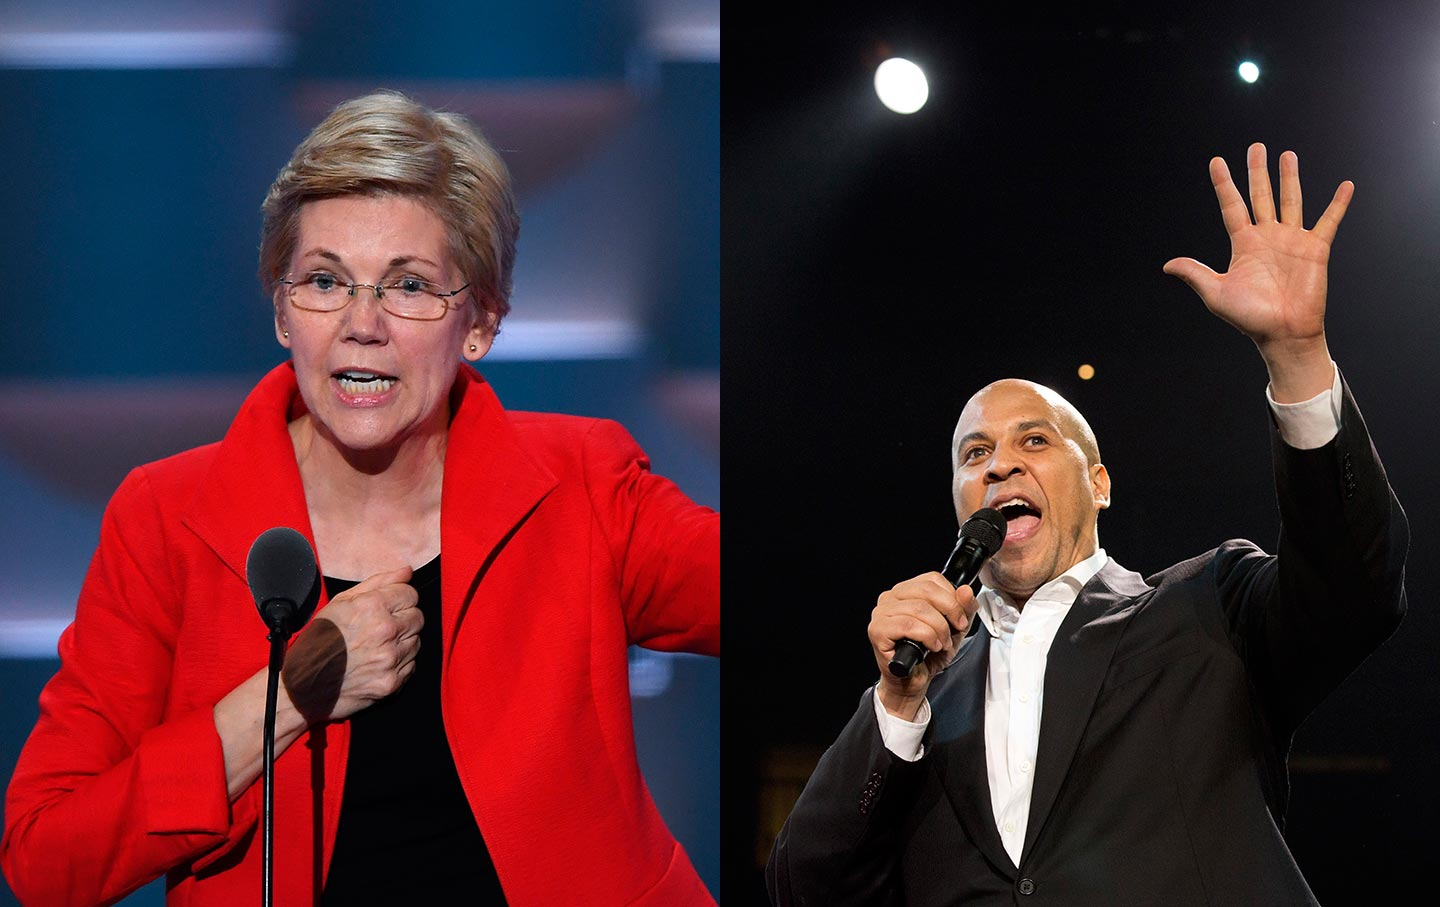 Cory Booker and Elizabeth Warren